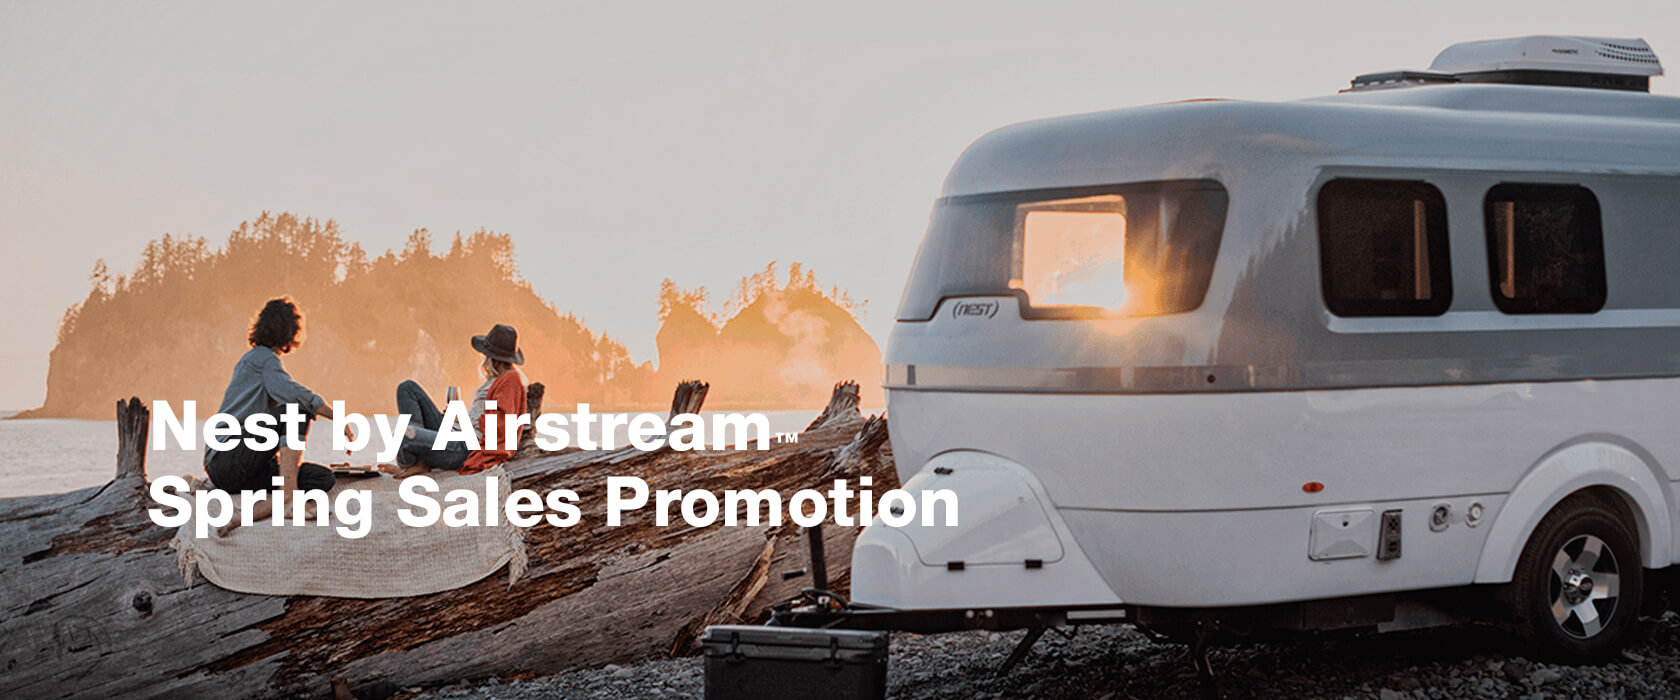 Nest by Airstream - Spring Sales Promotion